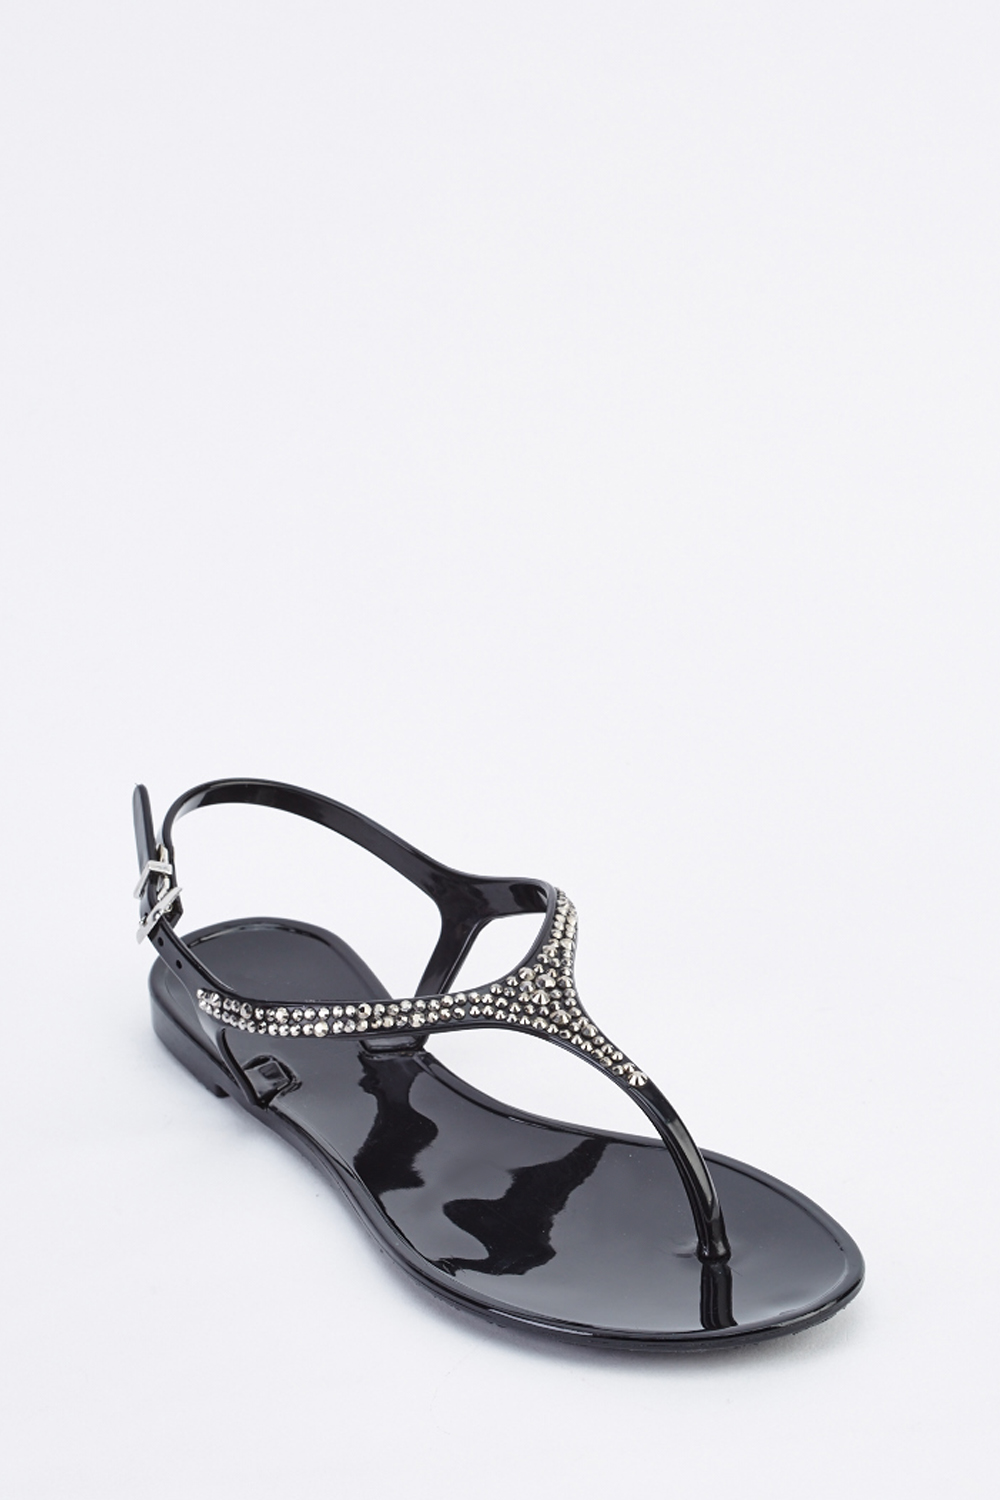 c15ea966b2e8 Encrusted T-Strap Flat Jelly Sandals - Just £5